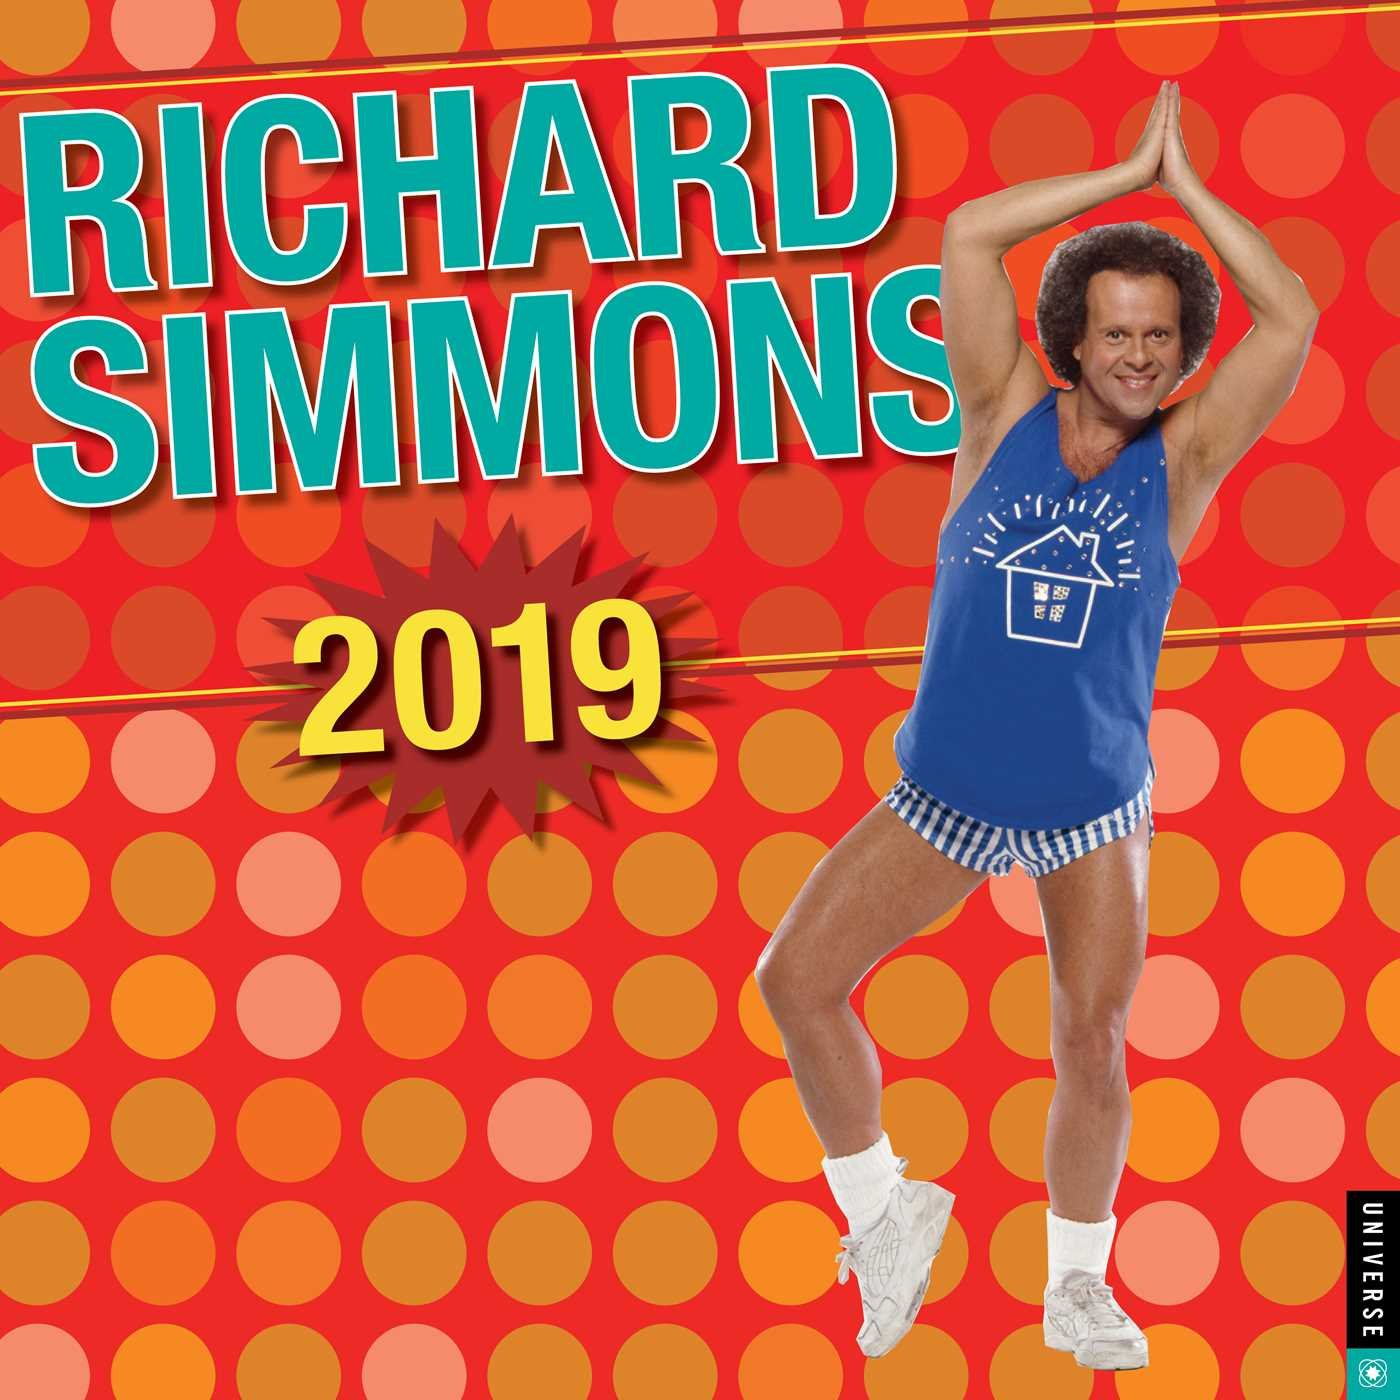 Richard Simmons 2019 Wall Calendar Calendar – Wall Calendar, July 17, 2018 Universe Publishing 0789335212 Calendars NON-CLASSIFIABLE